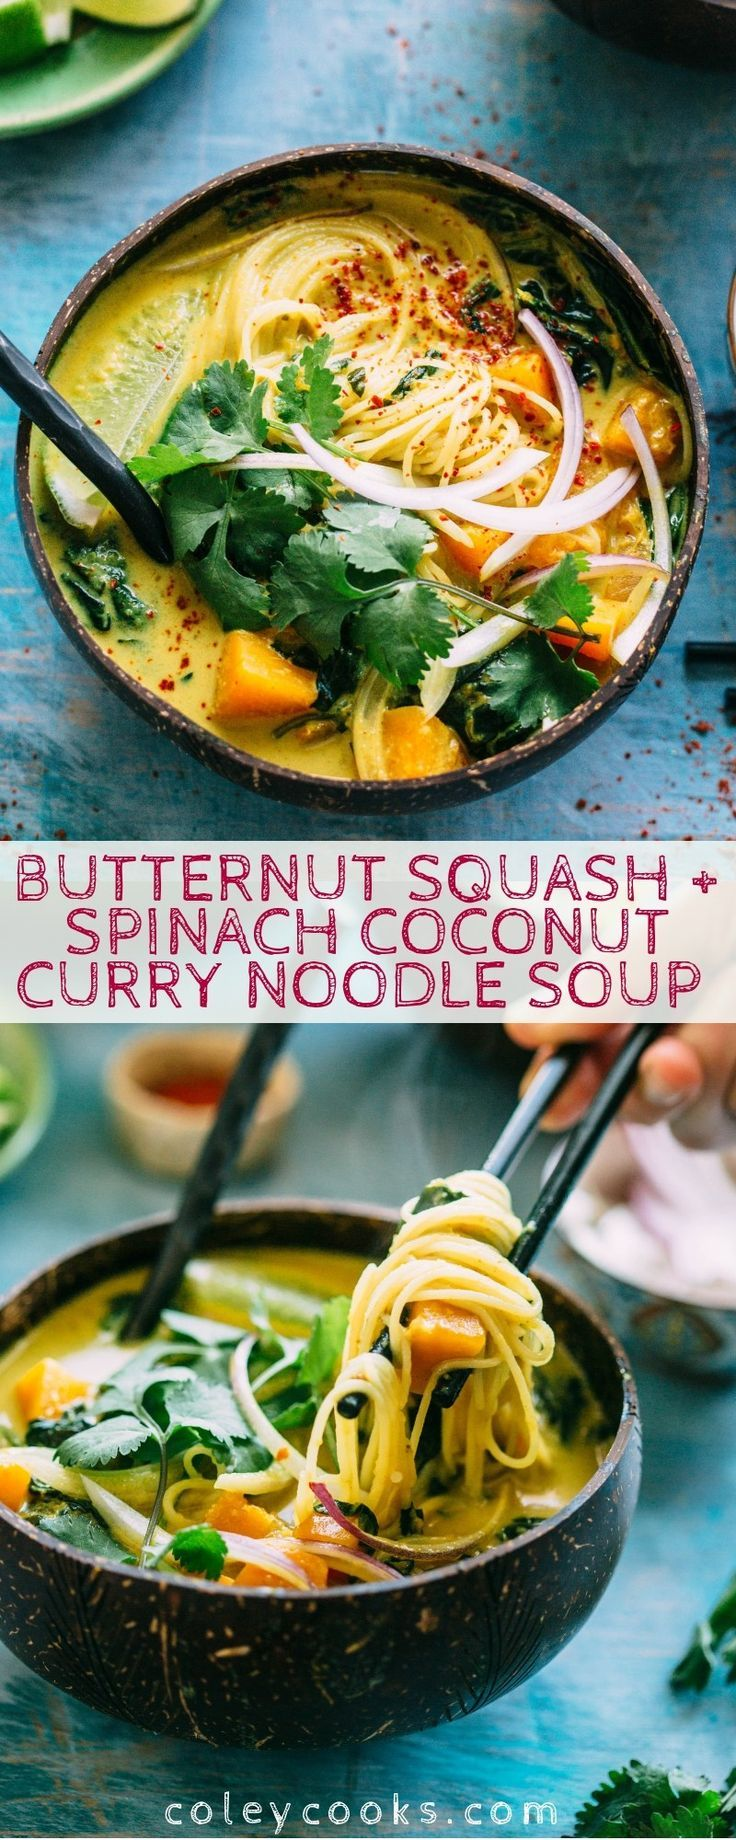 Coconut Curry Noodle Soup with Butternut Squash + Spinach